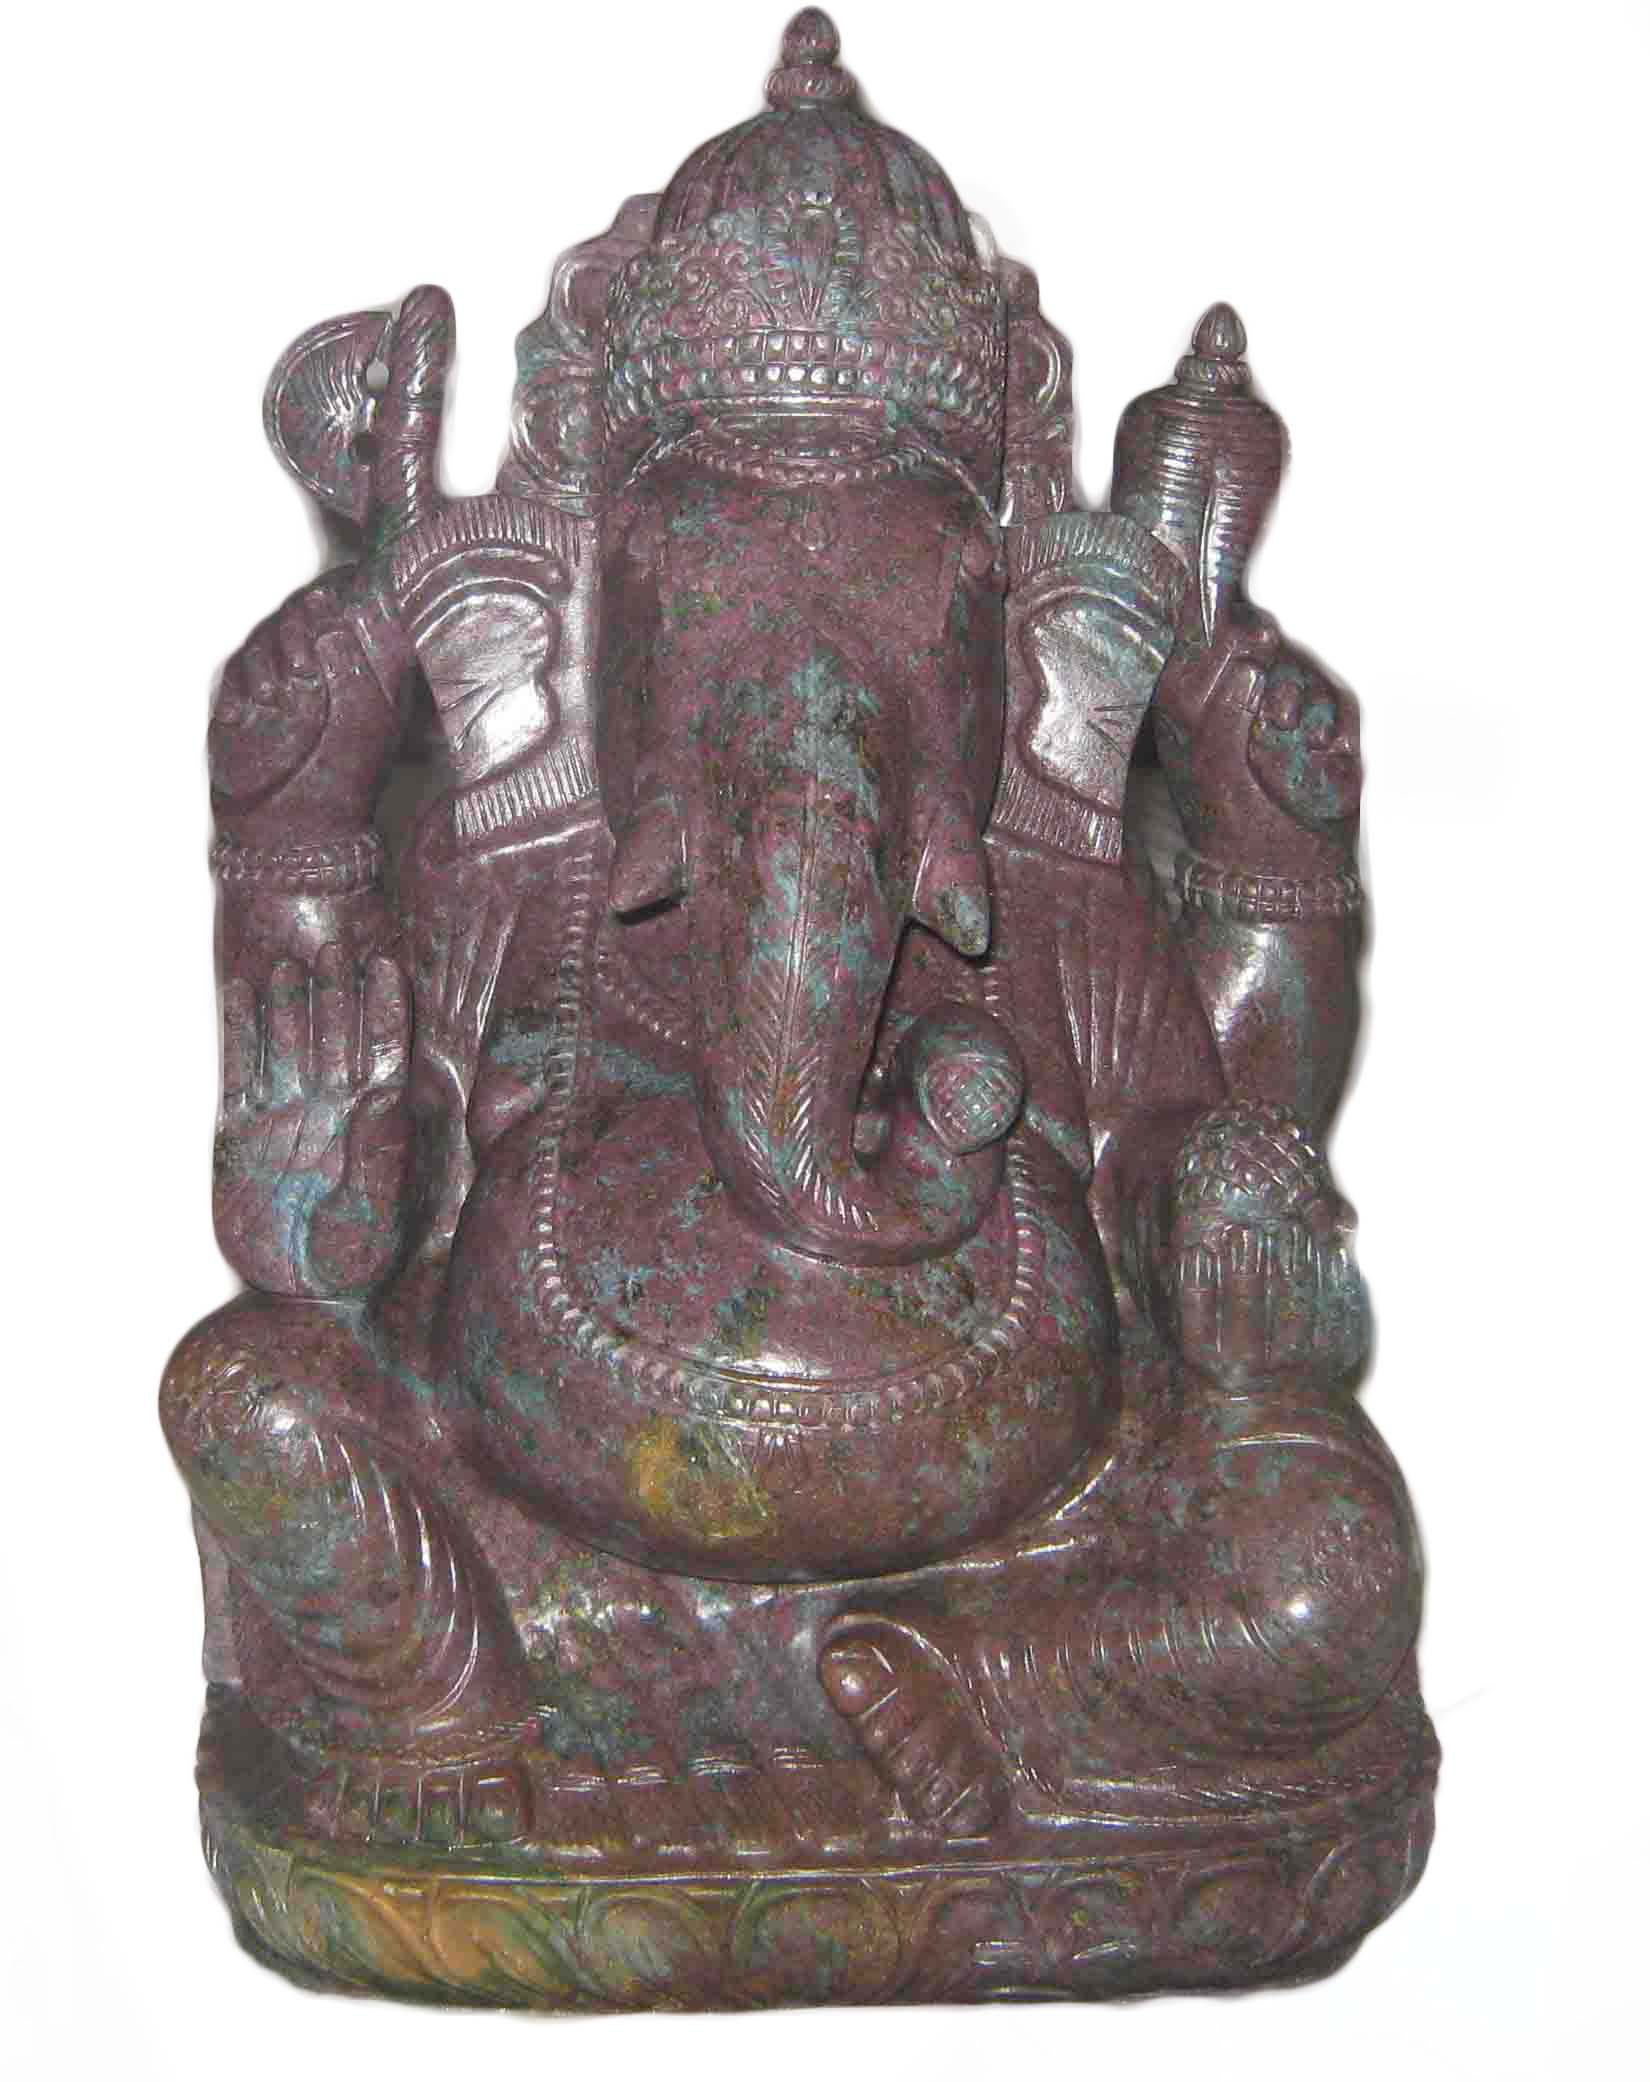 Corundum Ruby Ganesh wtih good carving